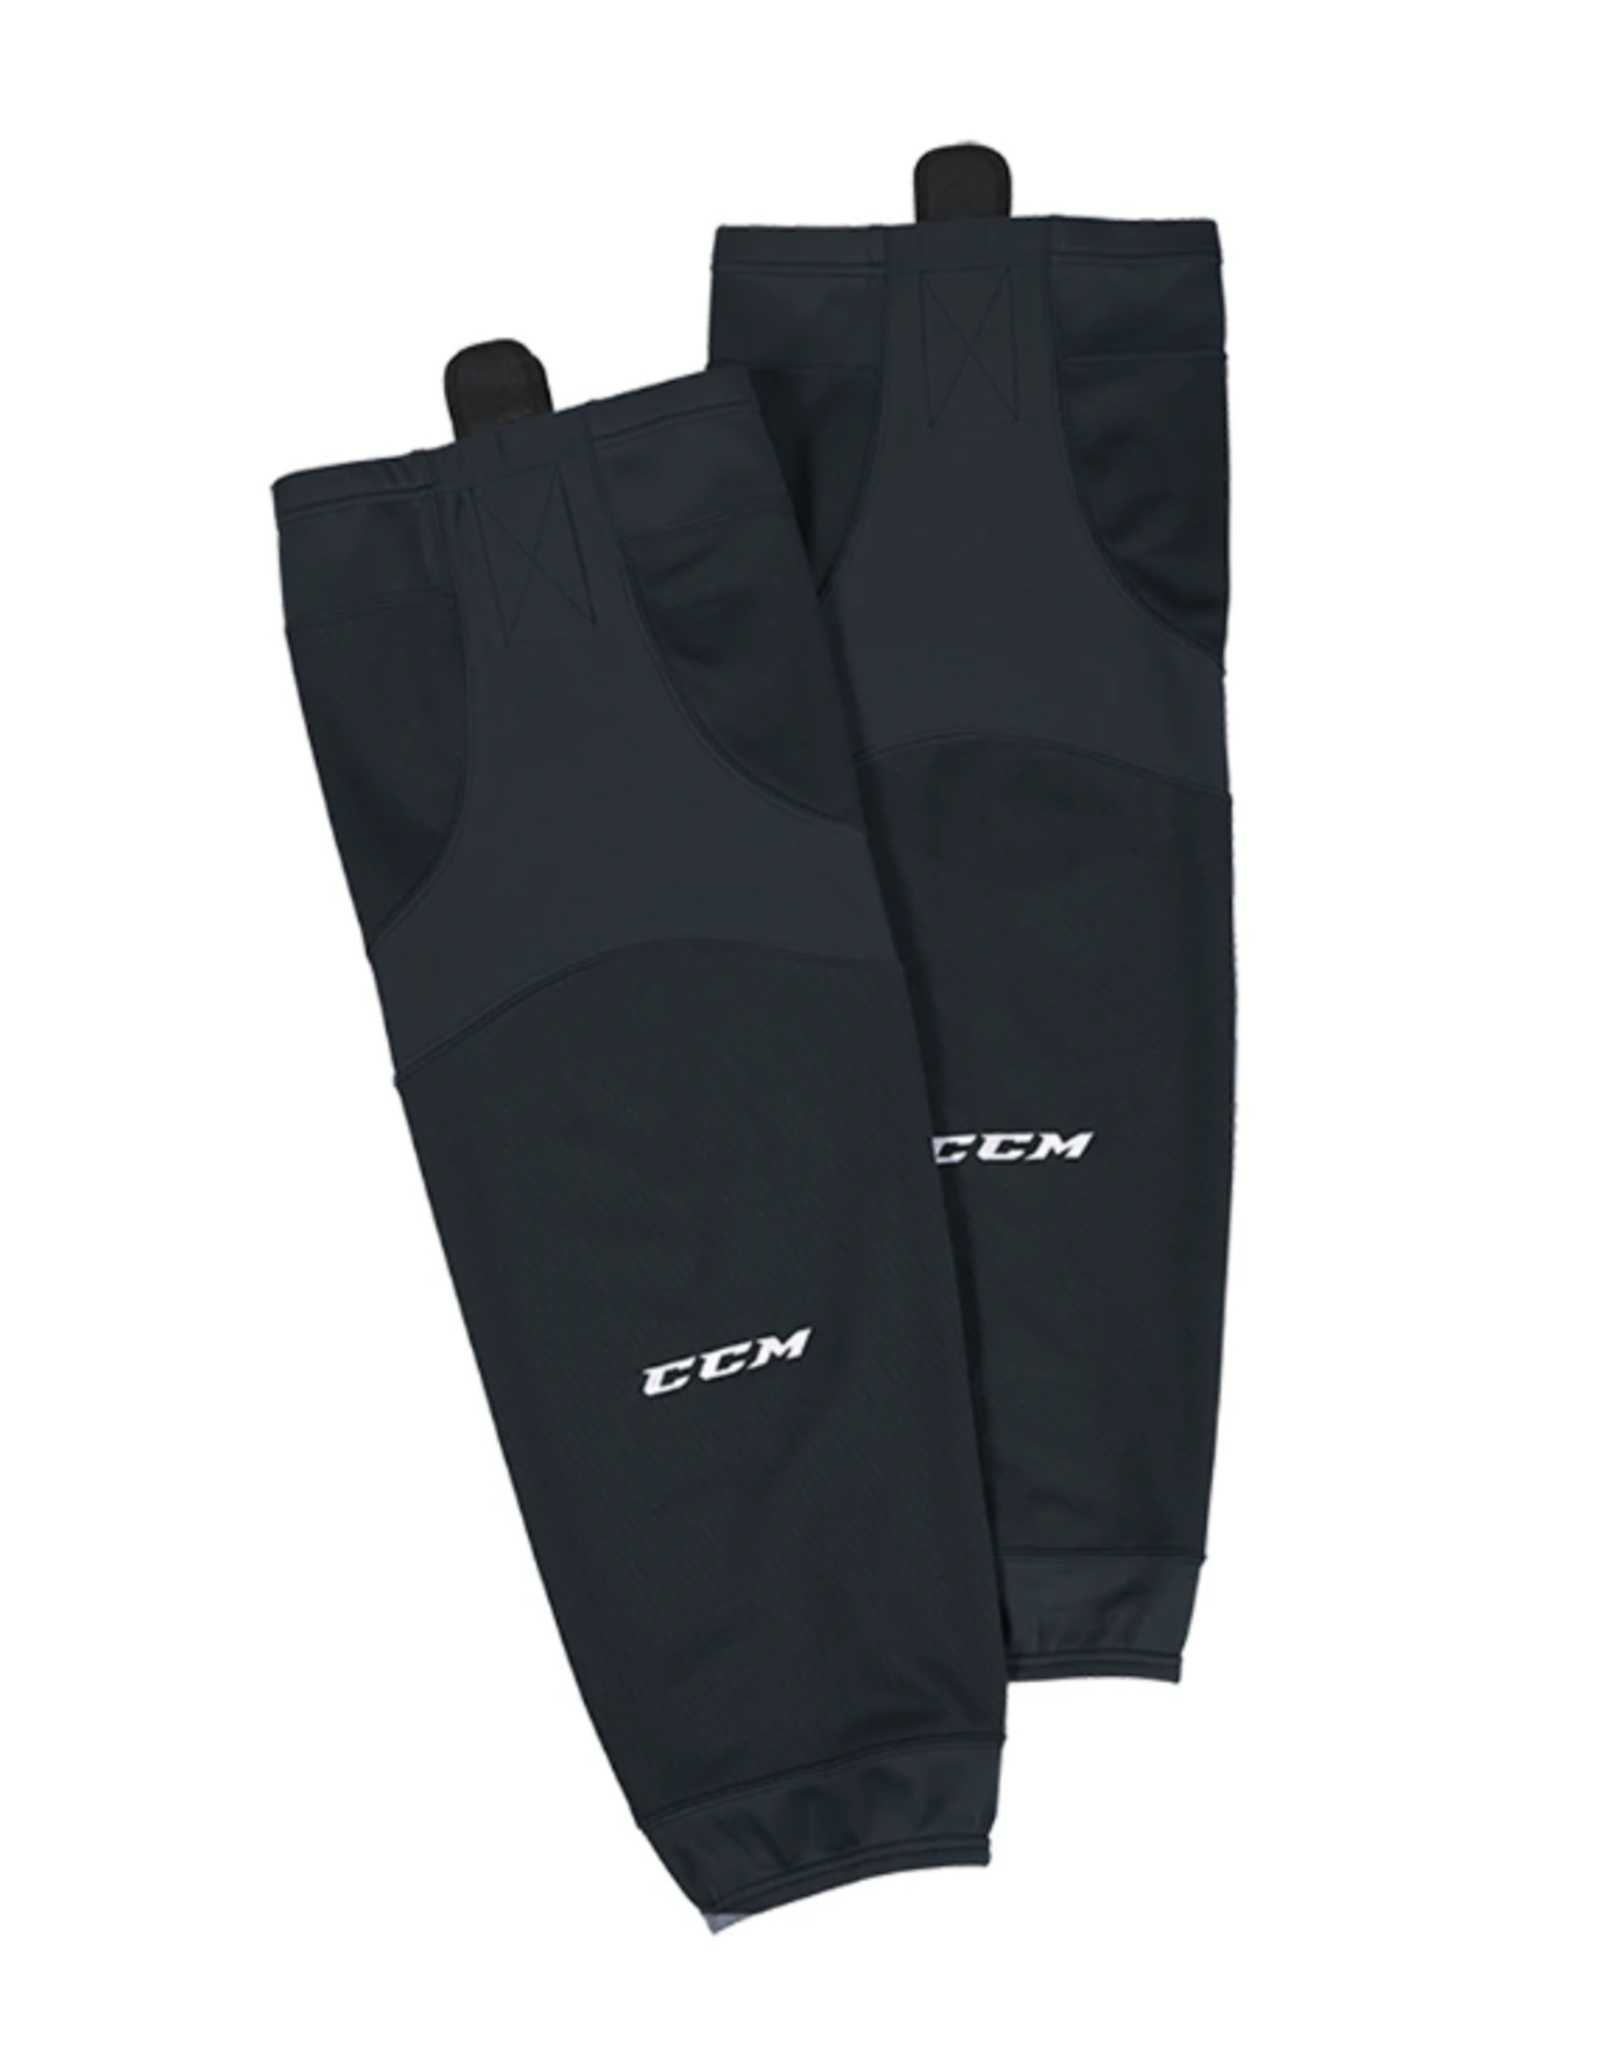 CCM SX6000 IN EDGE SOCK BLACK v.1 12